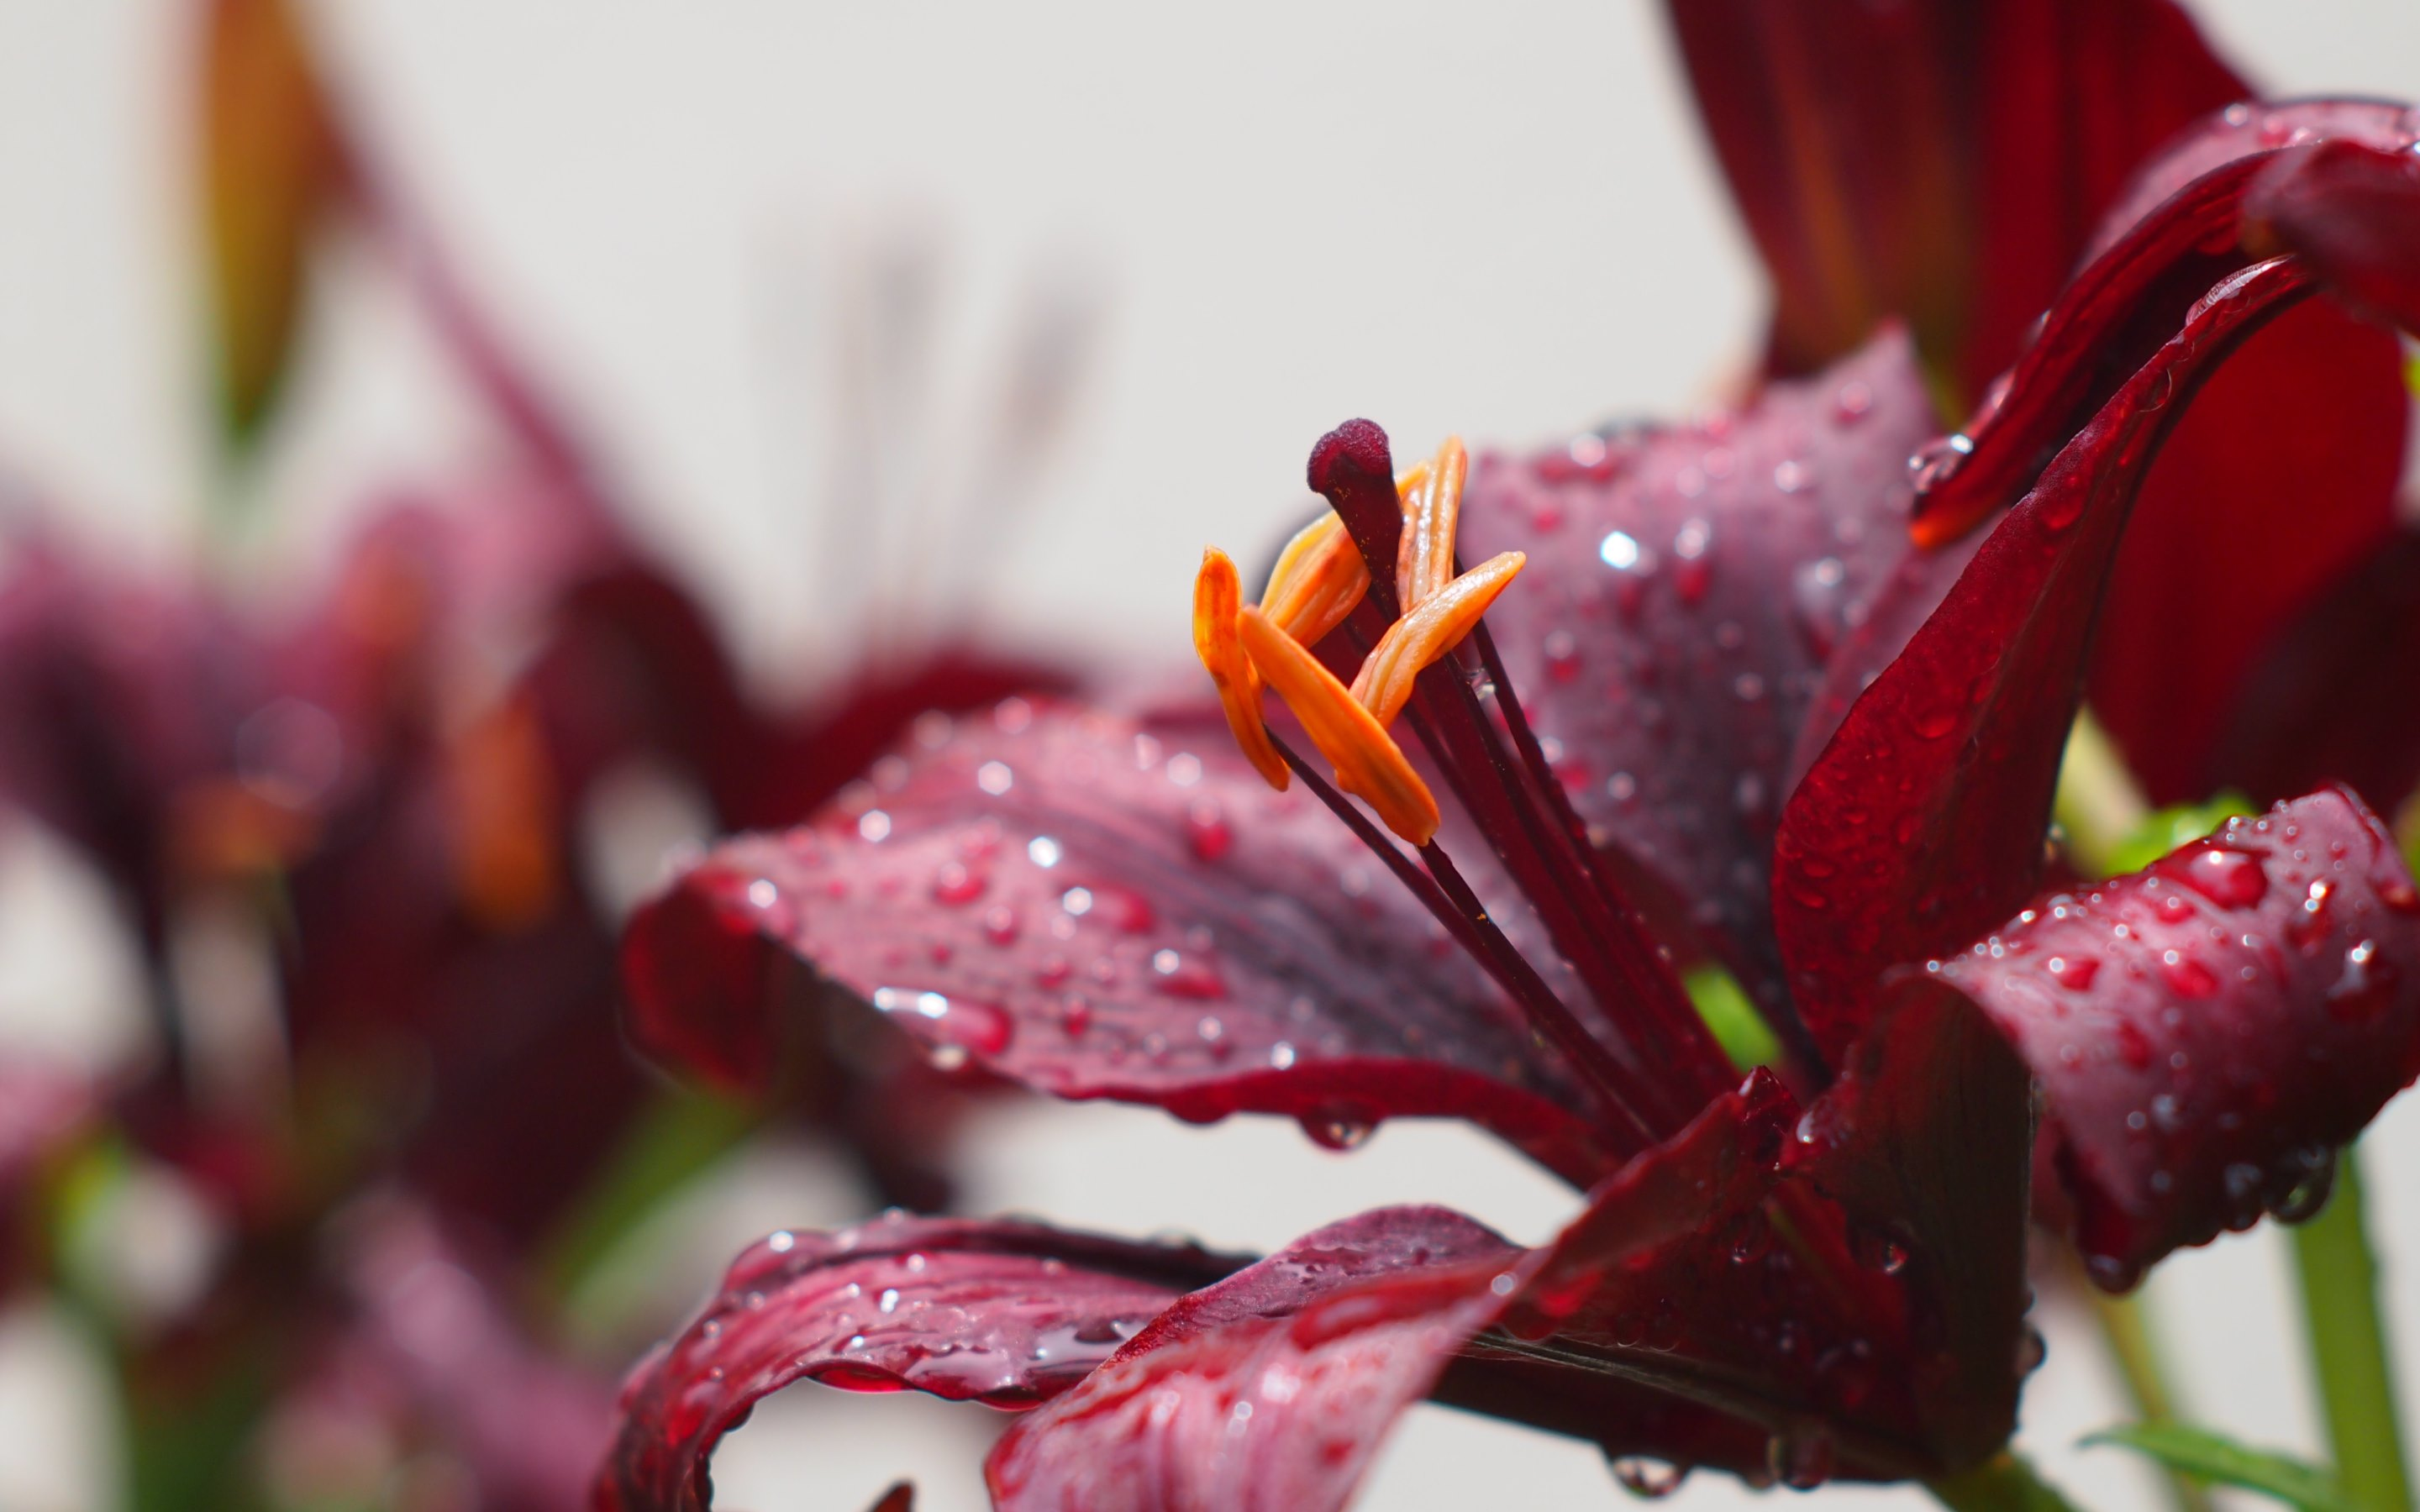 Burgundy Flowers and Rain Drops 2880x1800